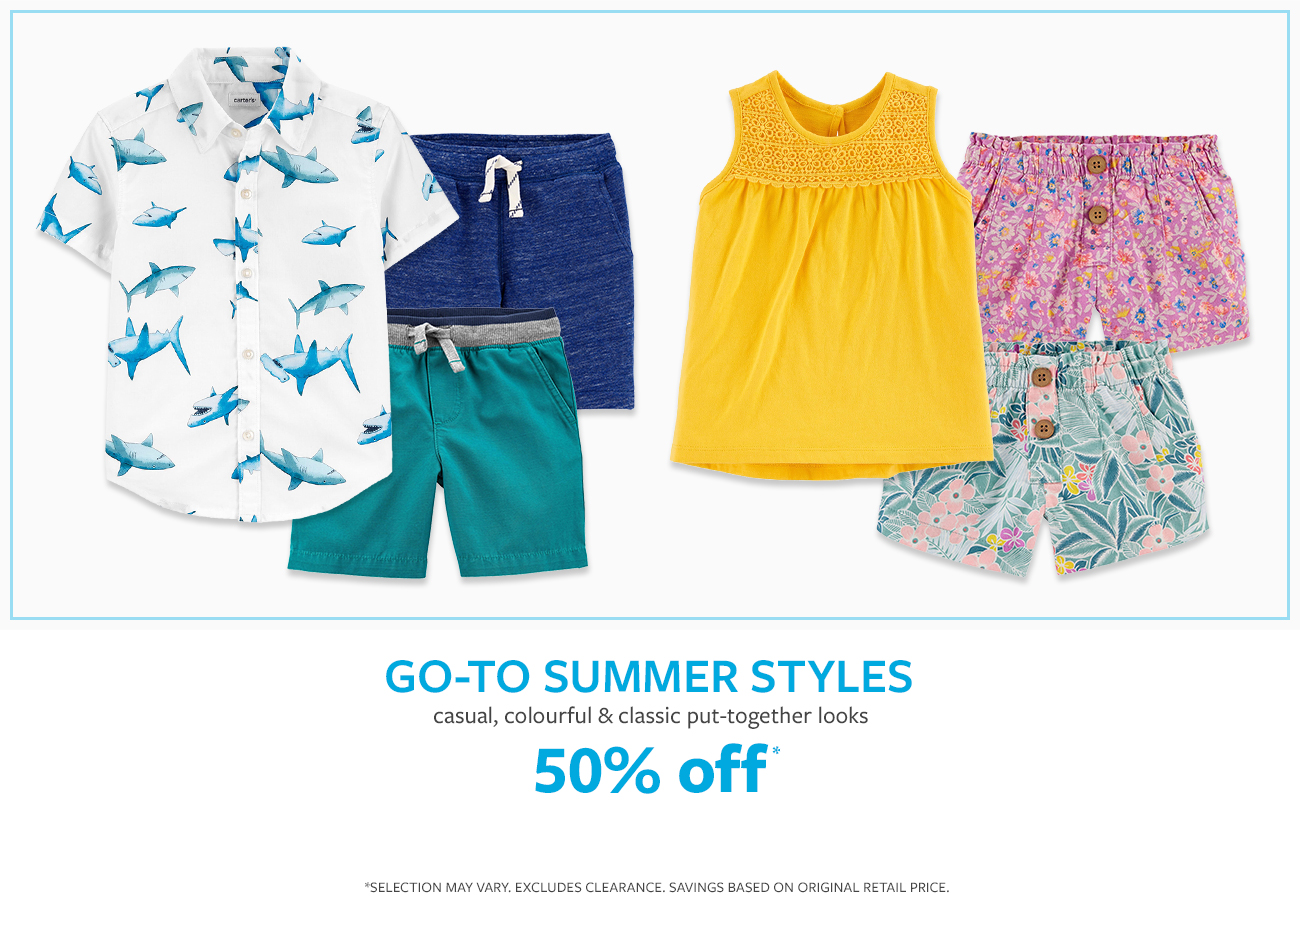 Go to summer styles | casual, colorful & classic put-together looks | 50% off